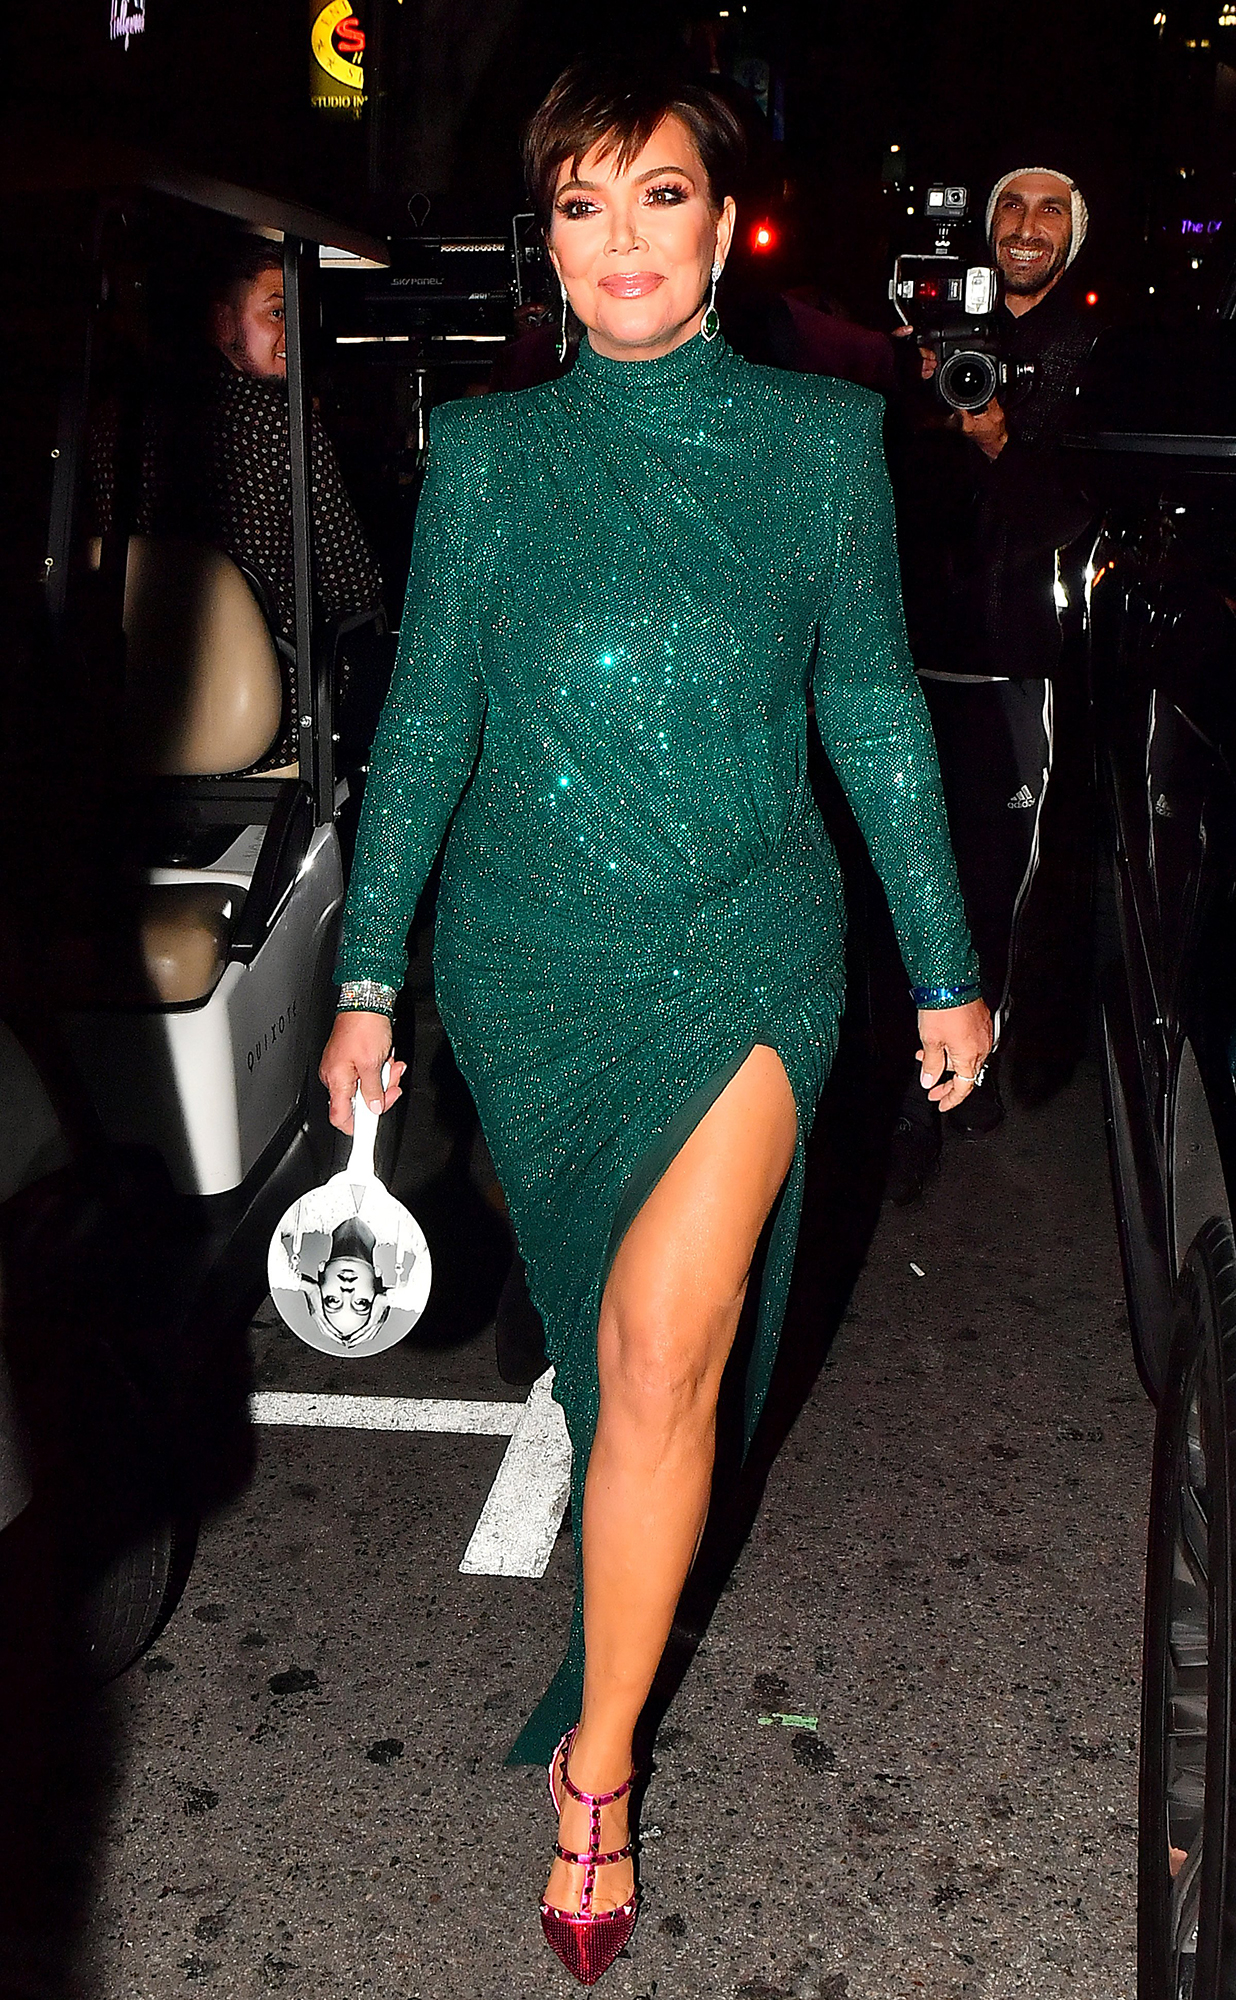 kris-jenner-diana-ross-birthday - Khloé and Kourtney, both decked out in sparkles, attended the get-together with their mother, Kris Jenner.